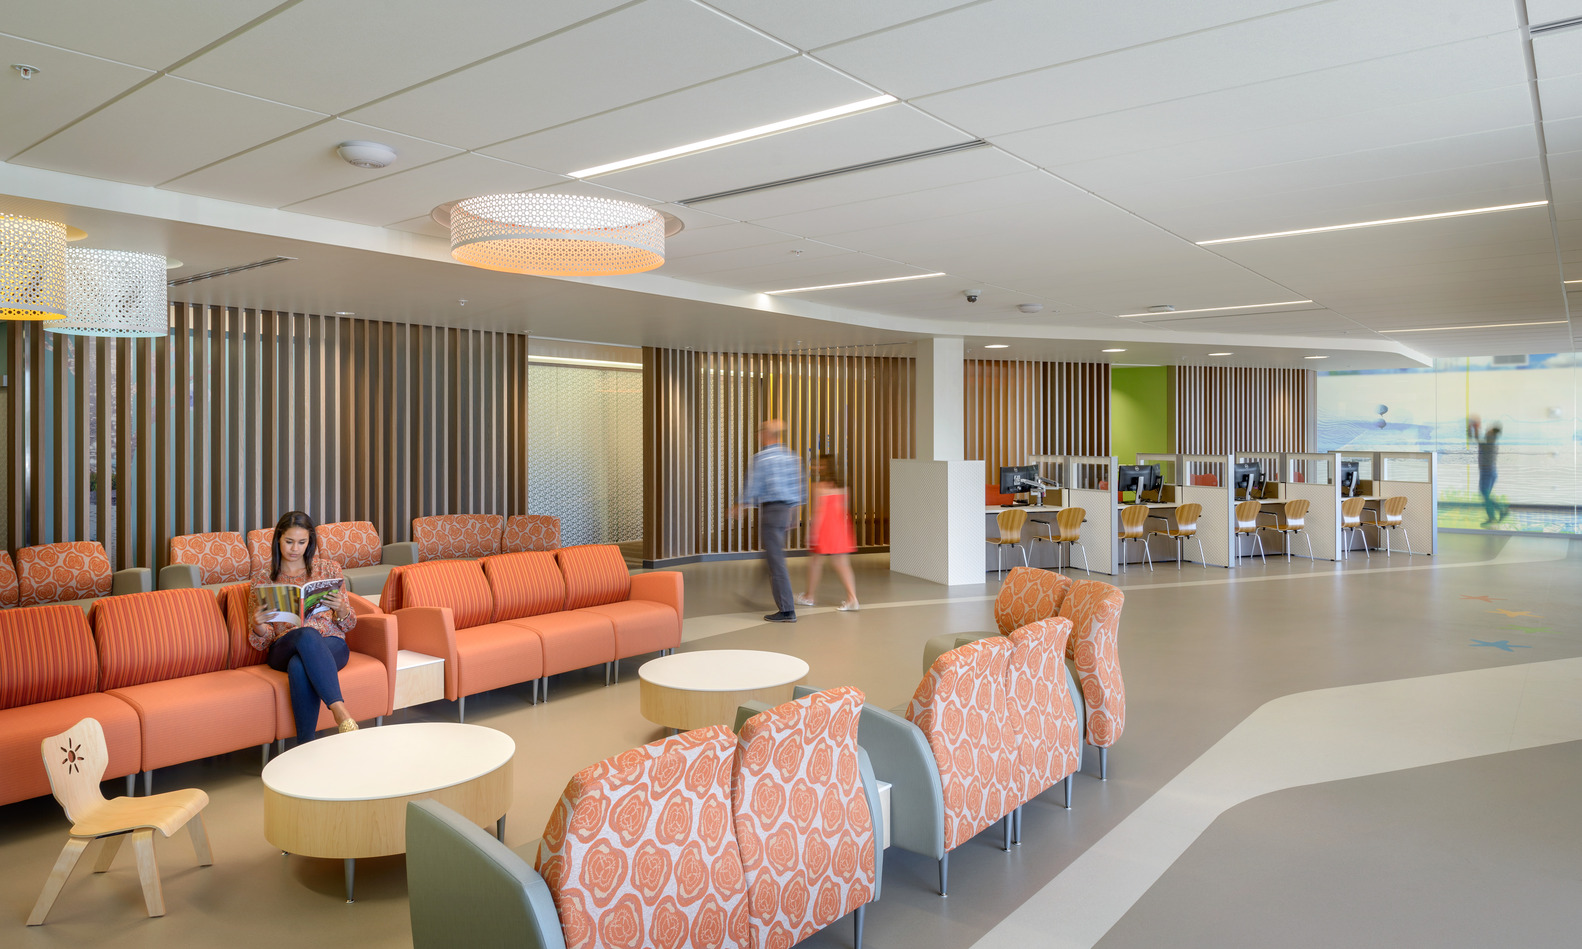 7 Projects Announced As Winners Of AIA National Healthcare Design Awards Seattle Childrens Hospital